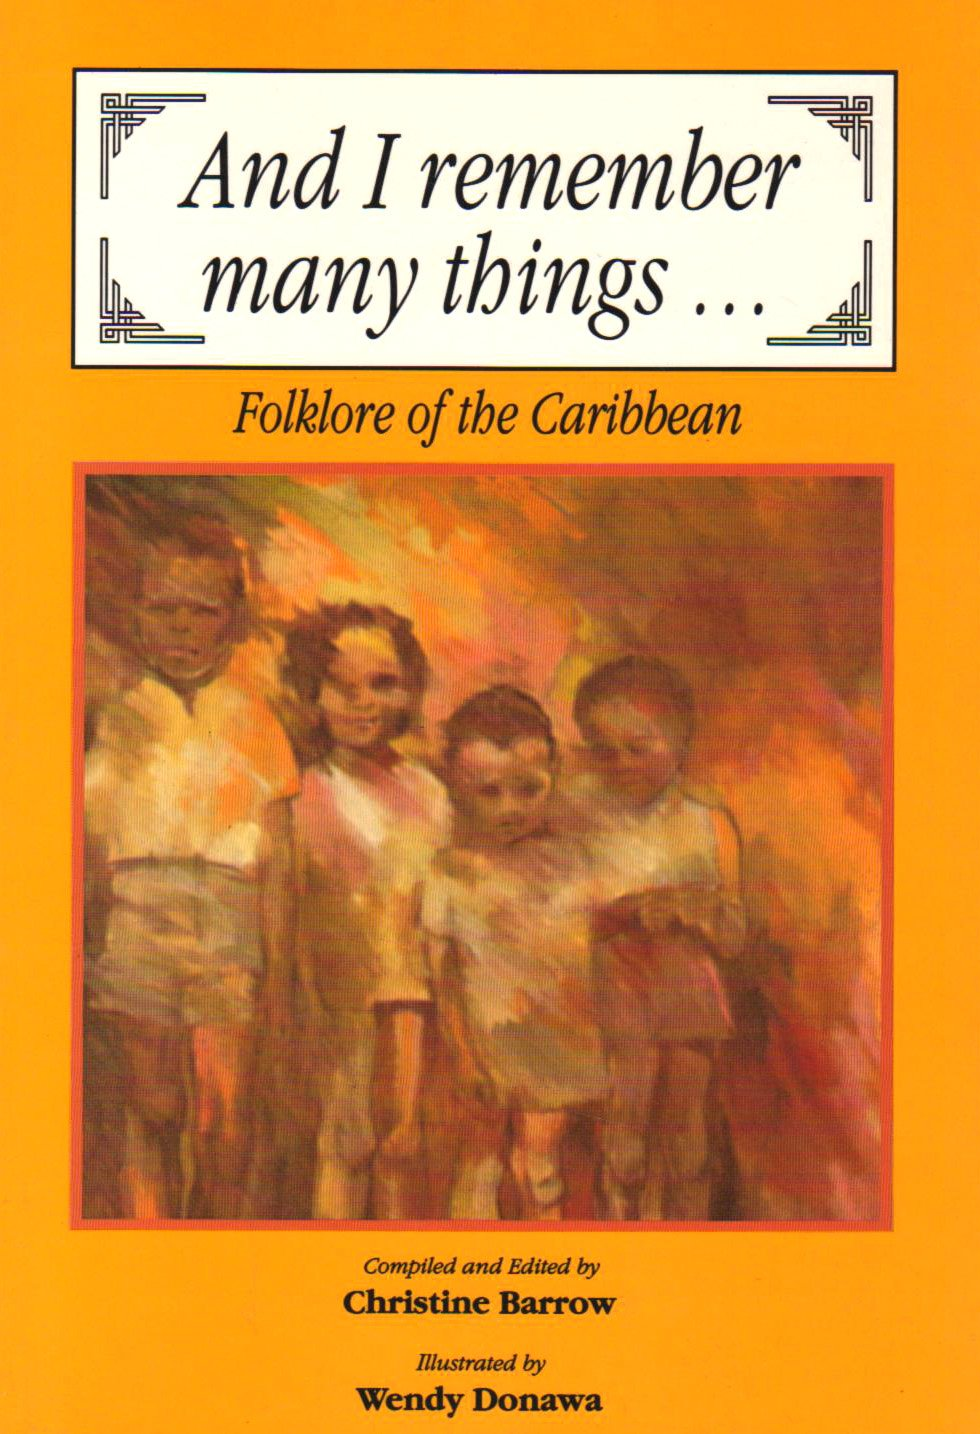 And I Remember Many Things: Folklore of the Caribbean